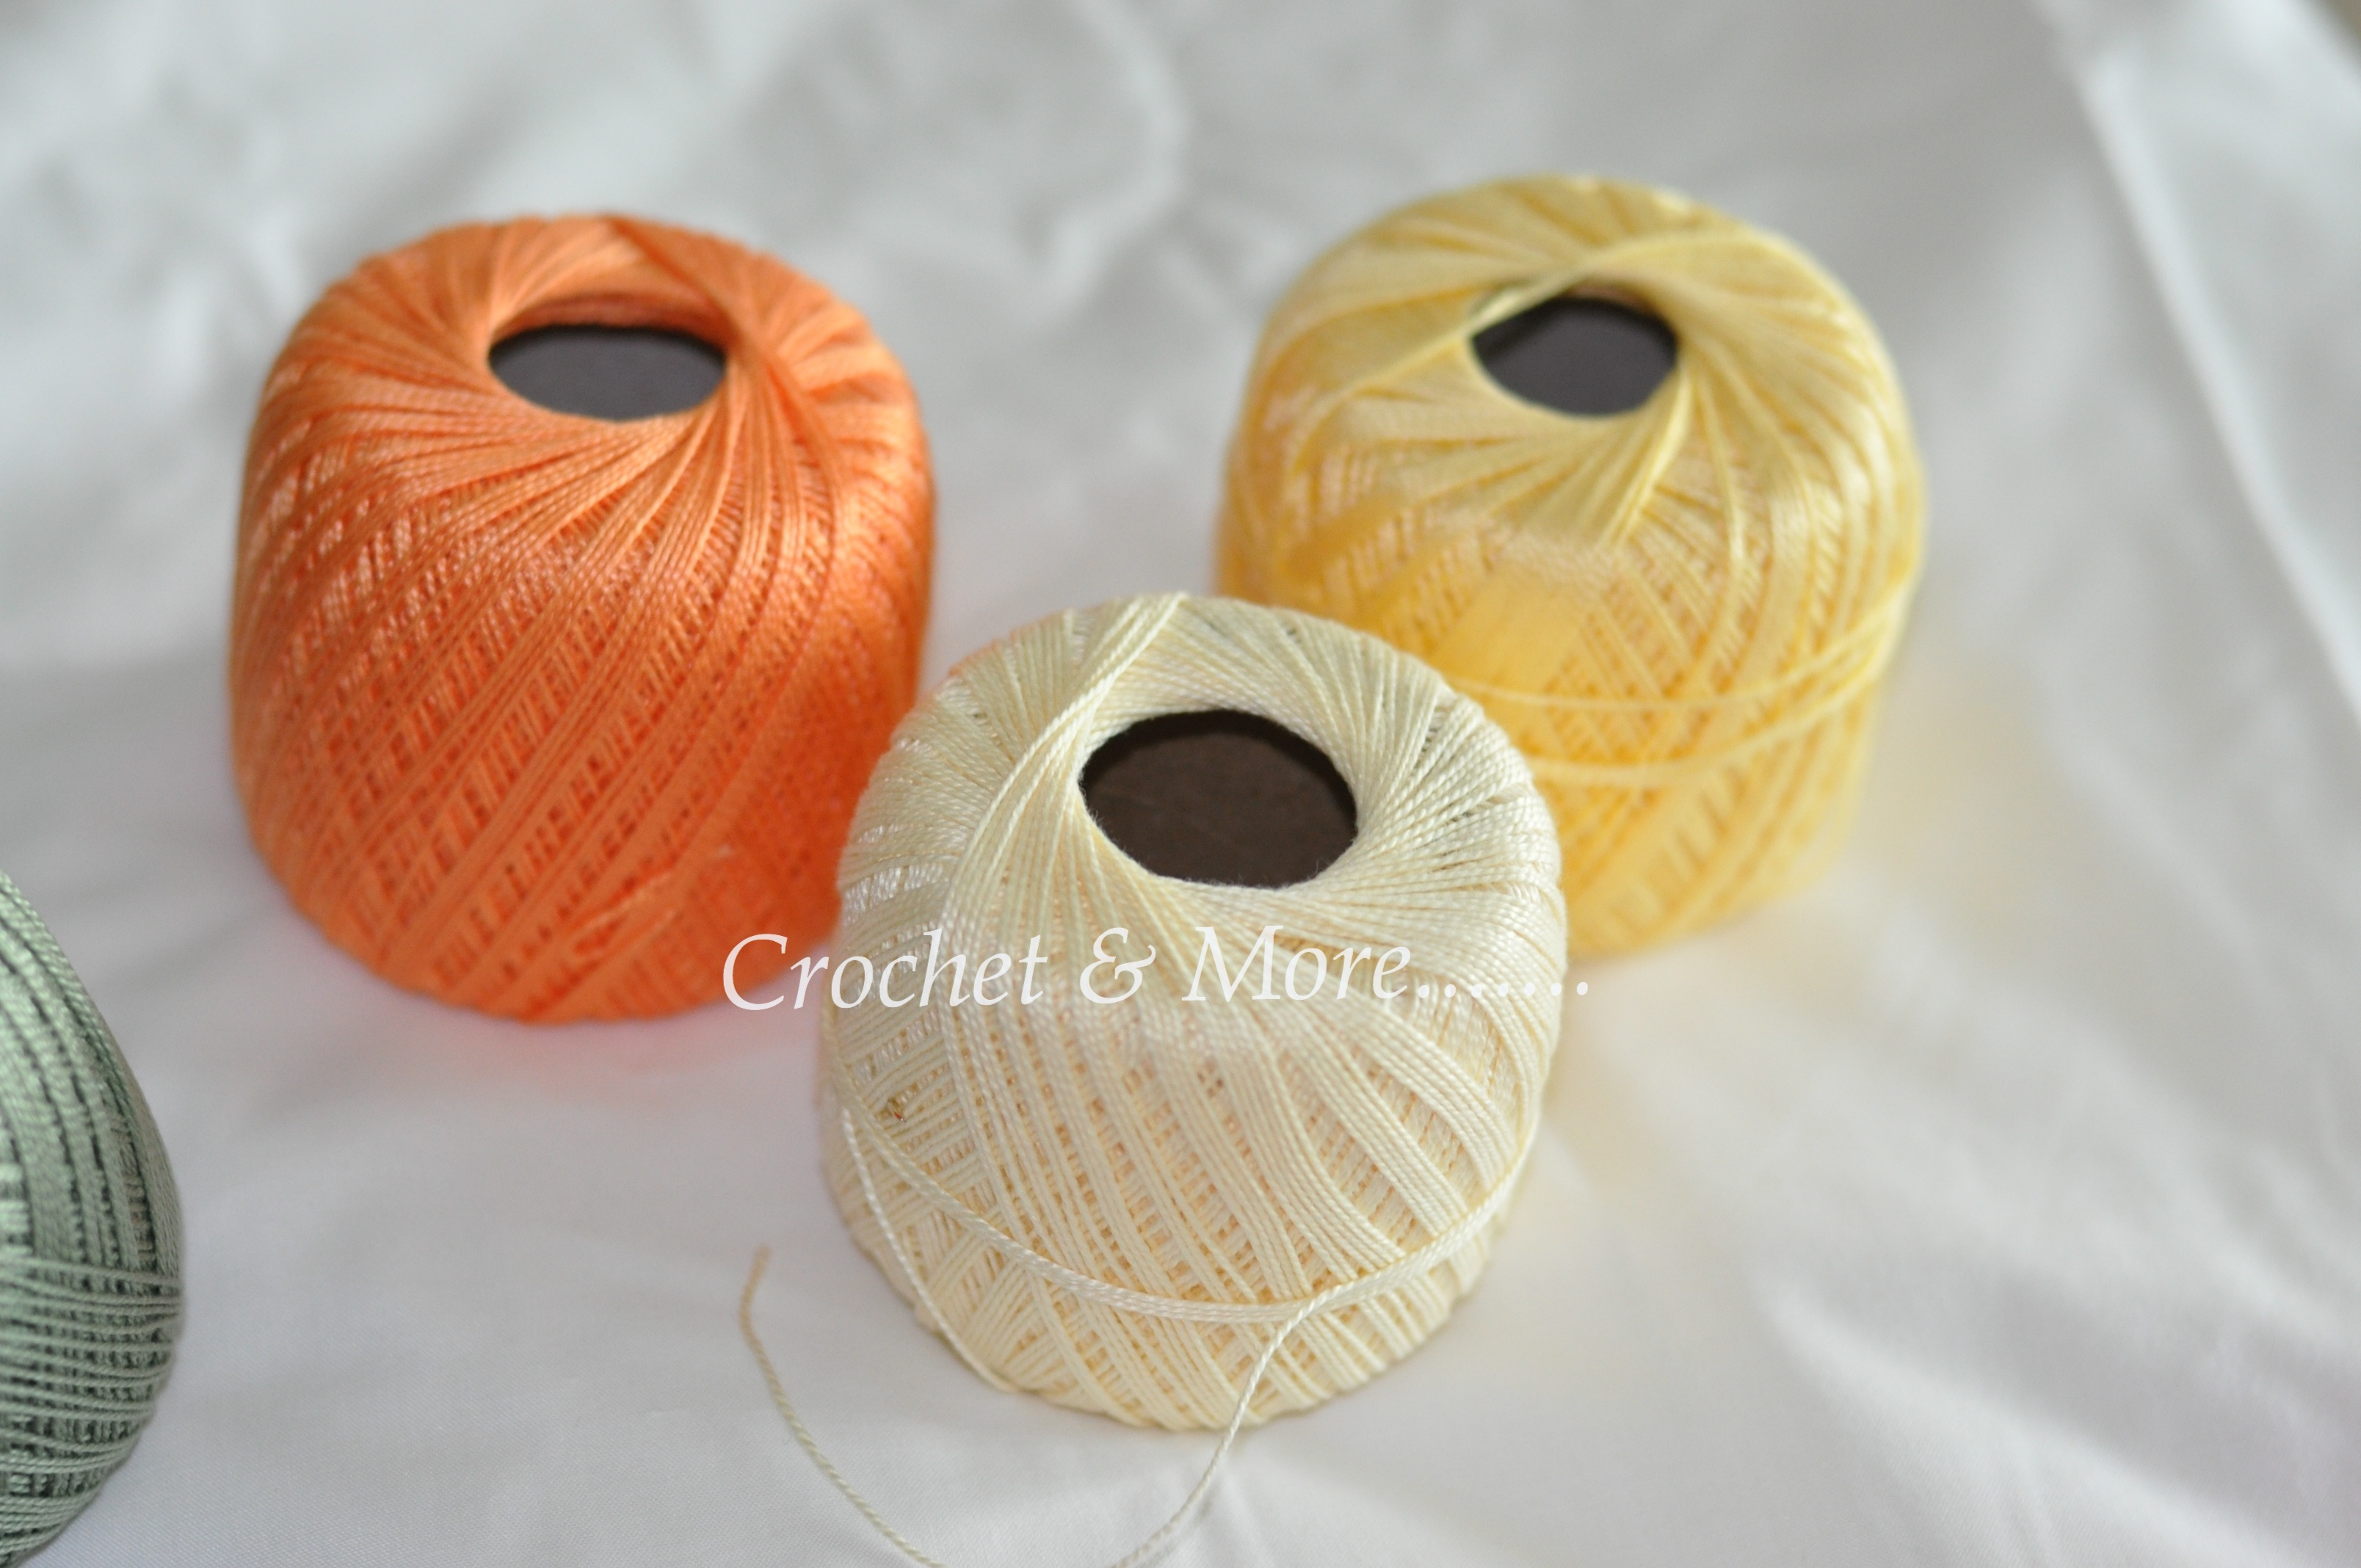 Know Your Cotton Yarn Thread Hook Crochetnmore,Rotel Dip Ingredients